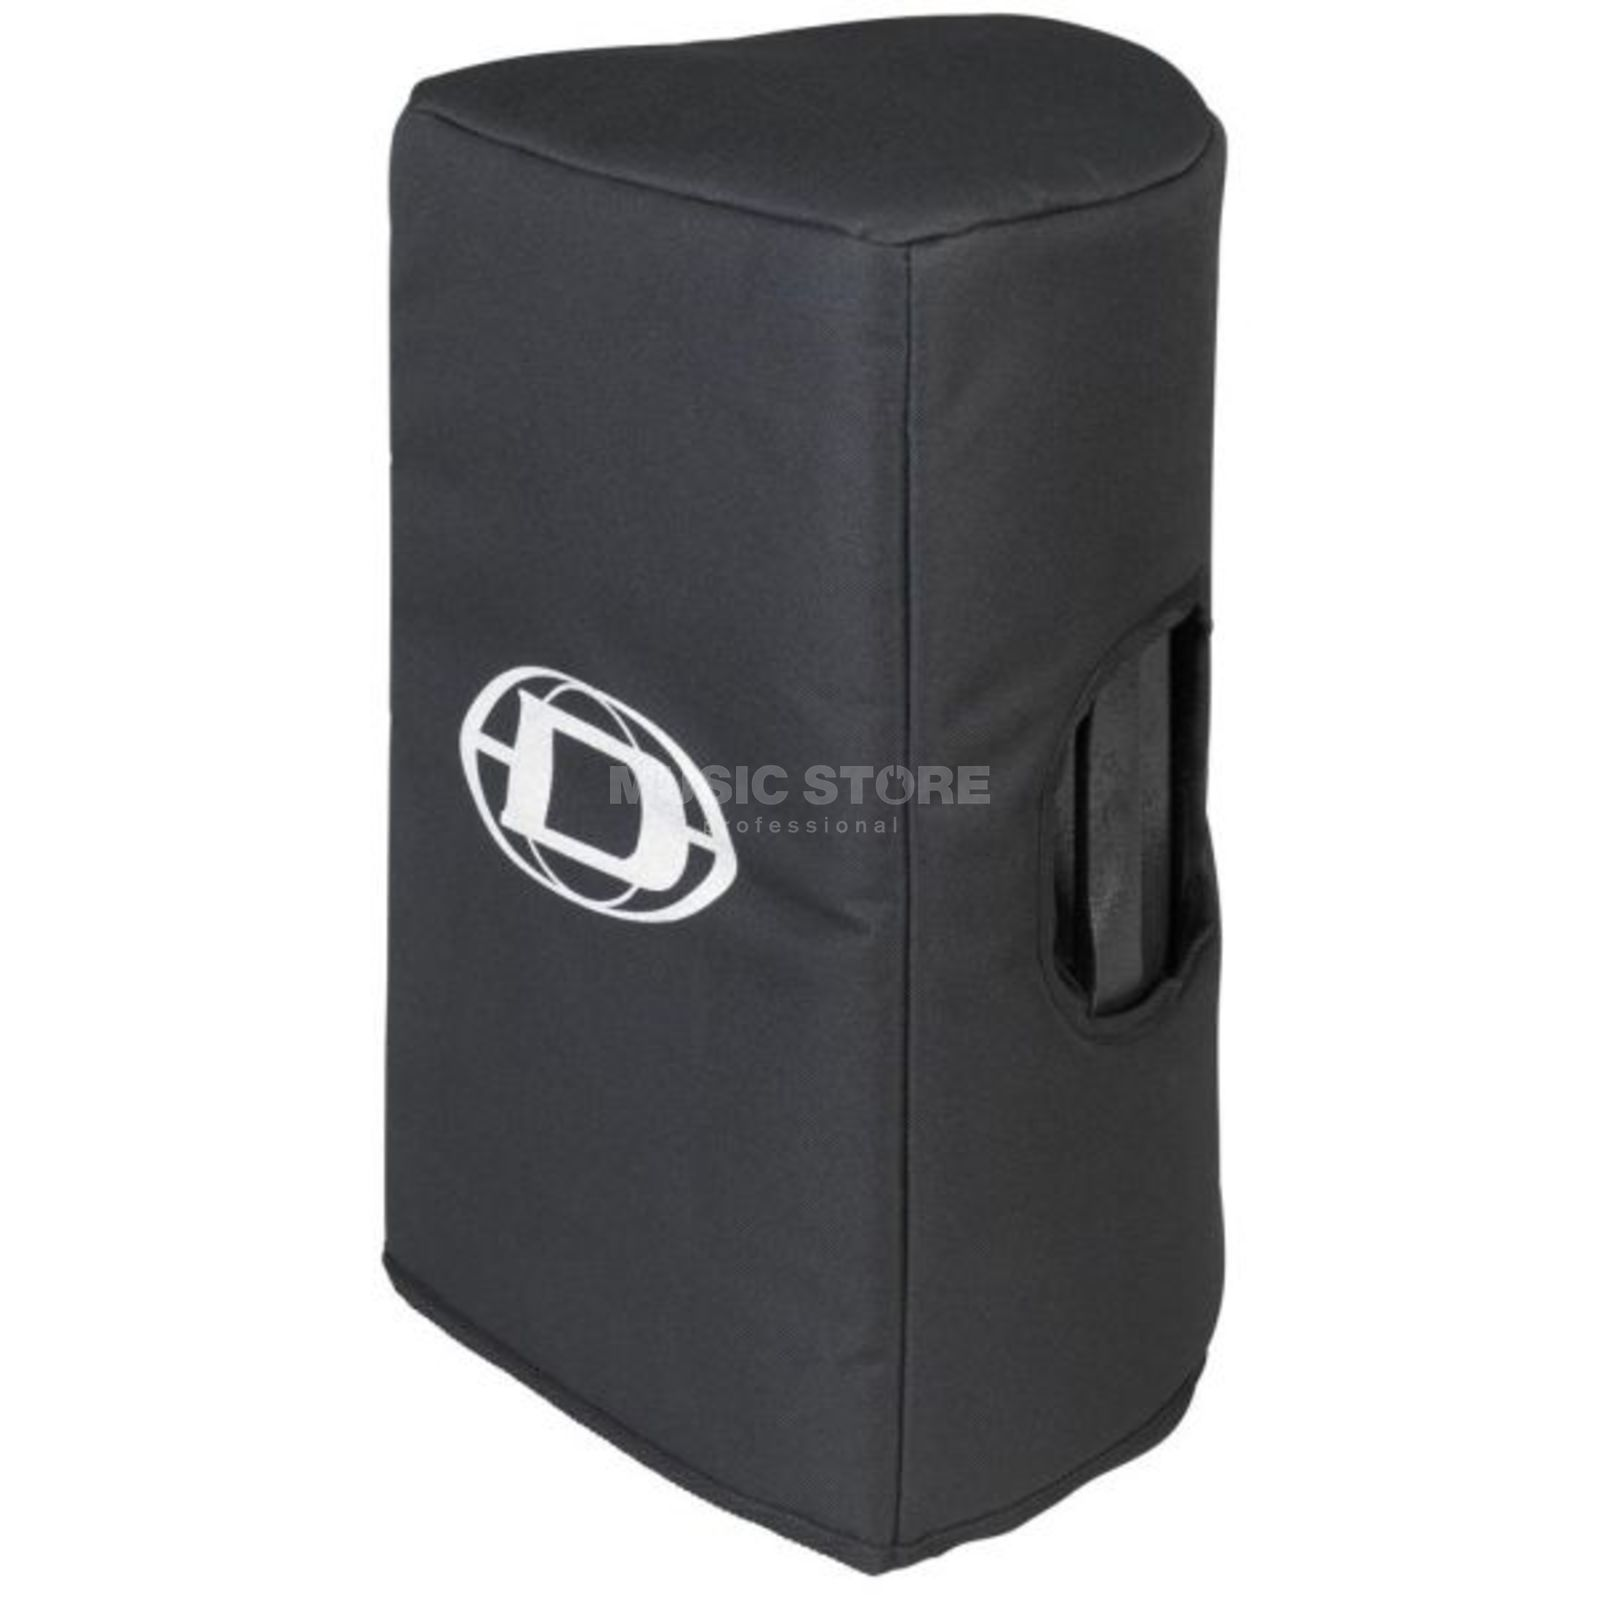 Dynacord SH-D8 PVC Protective Cover for D 8 / D 8W Product Image